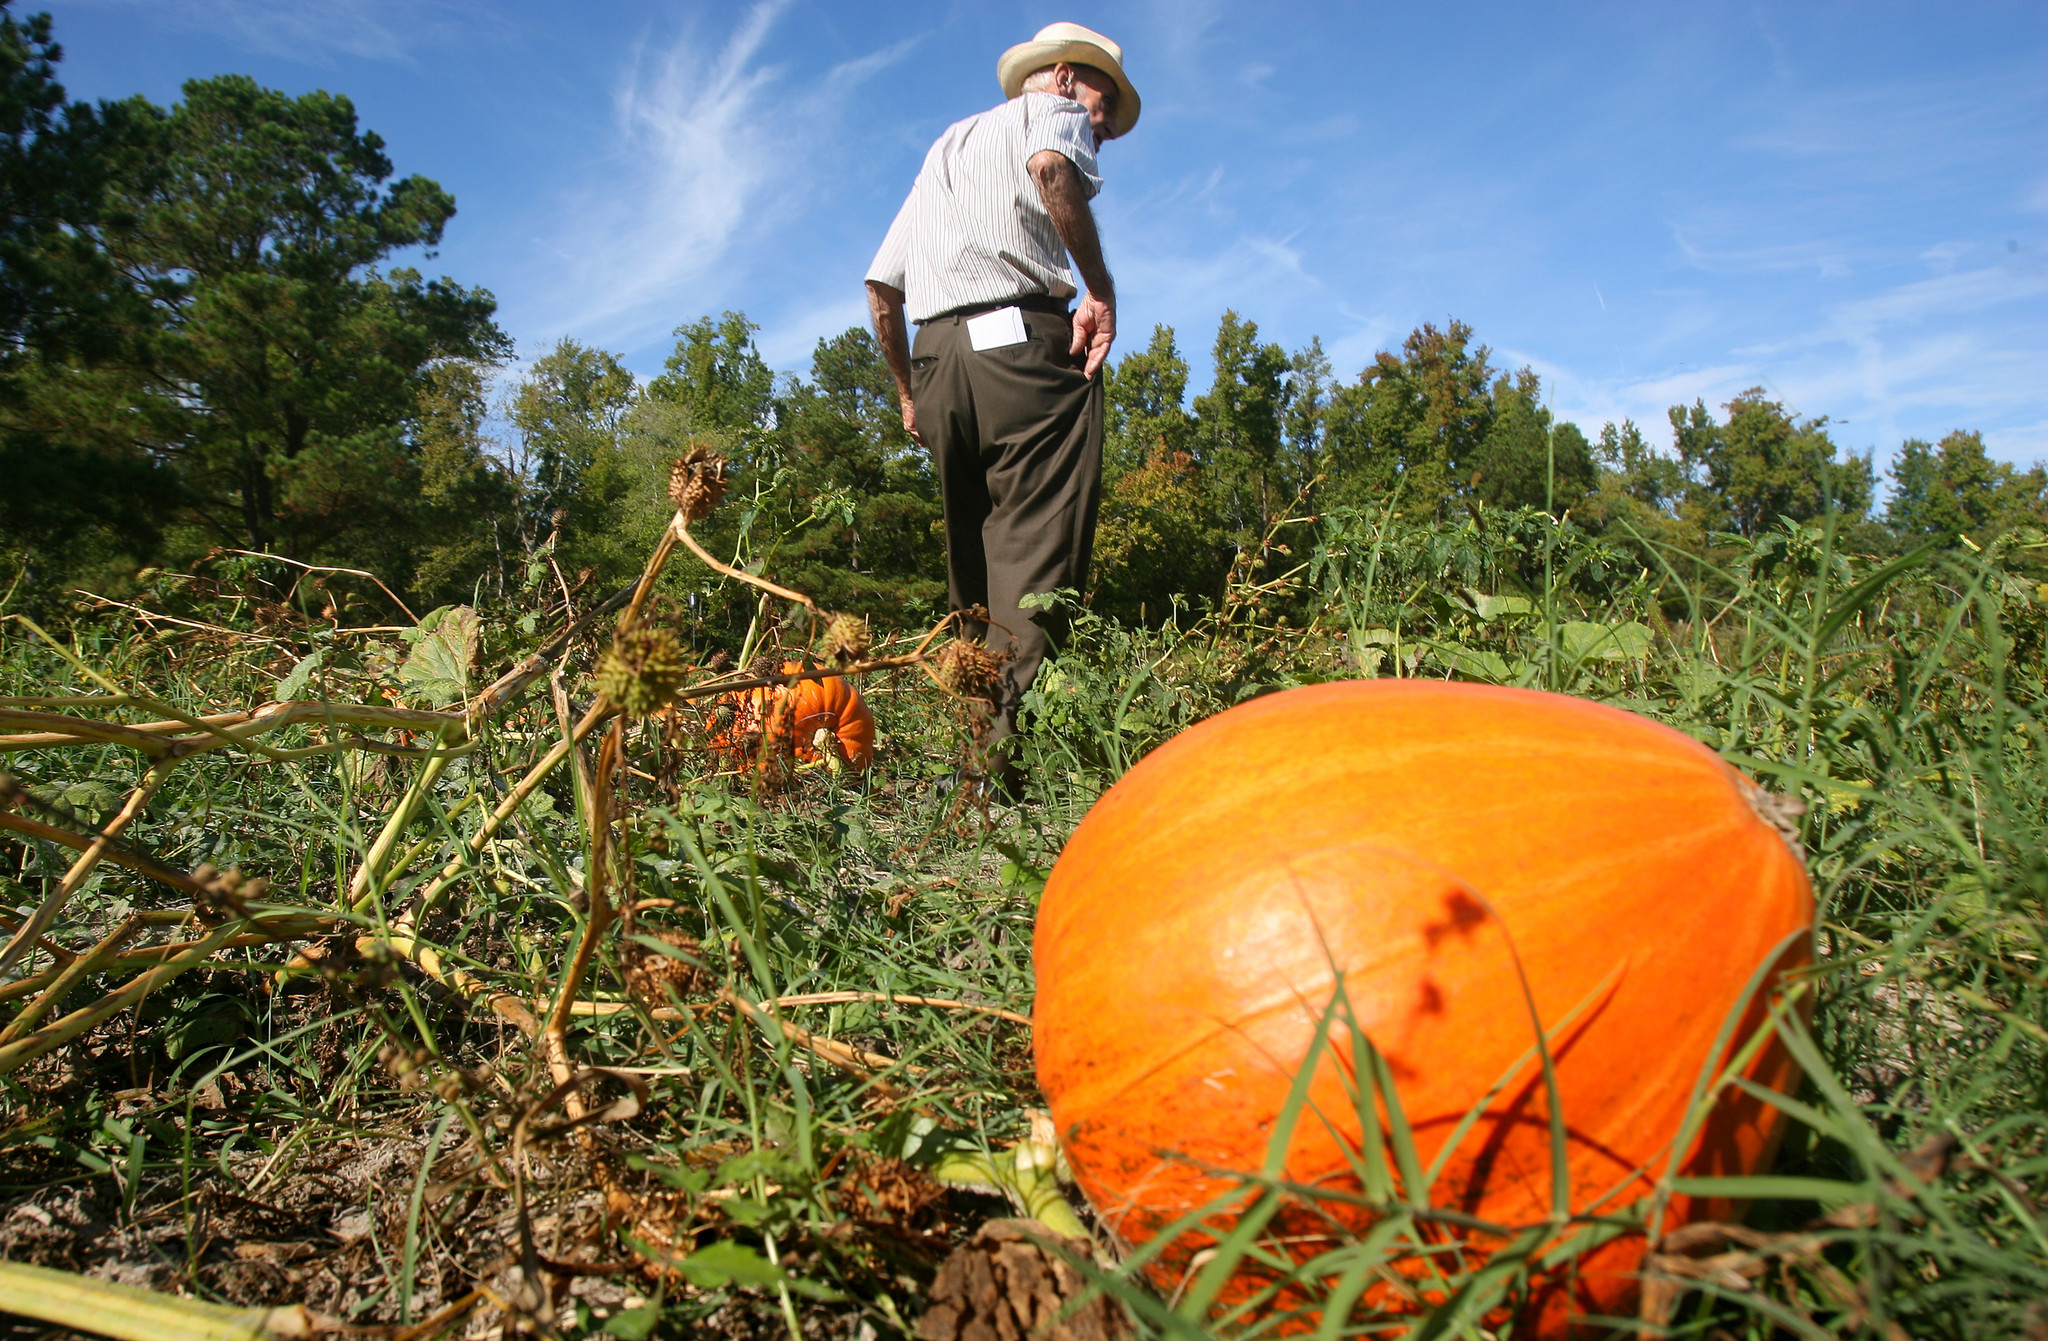 View Pumpkin Patch You Pick ~ Cutting File Image